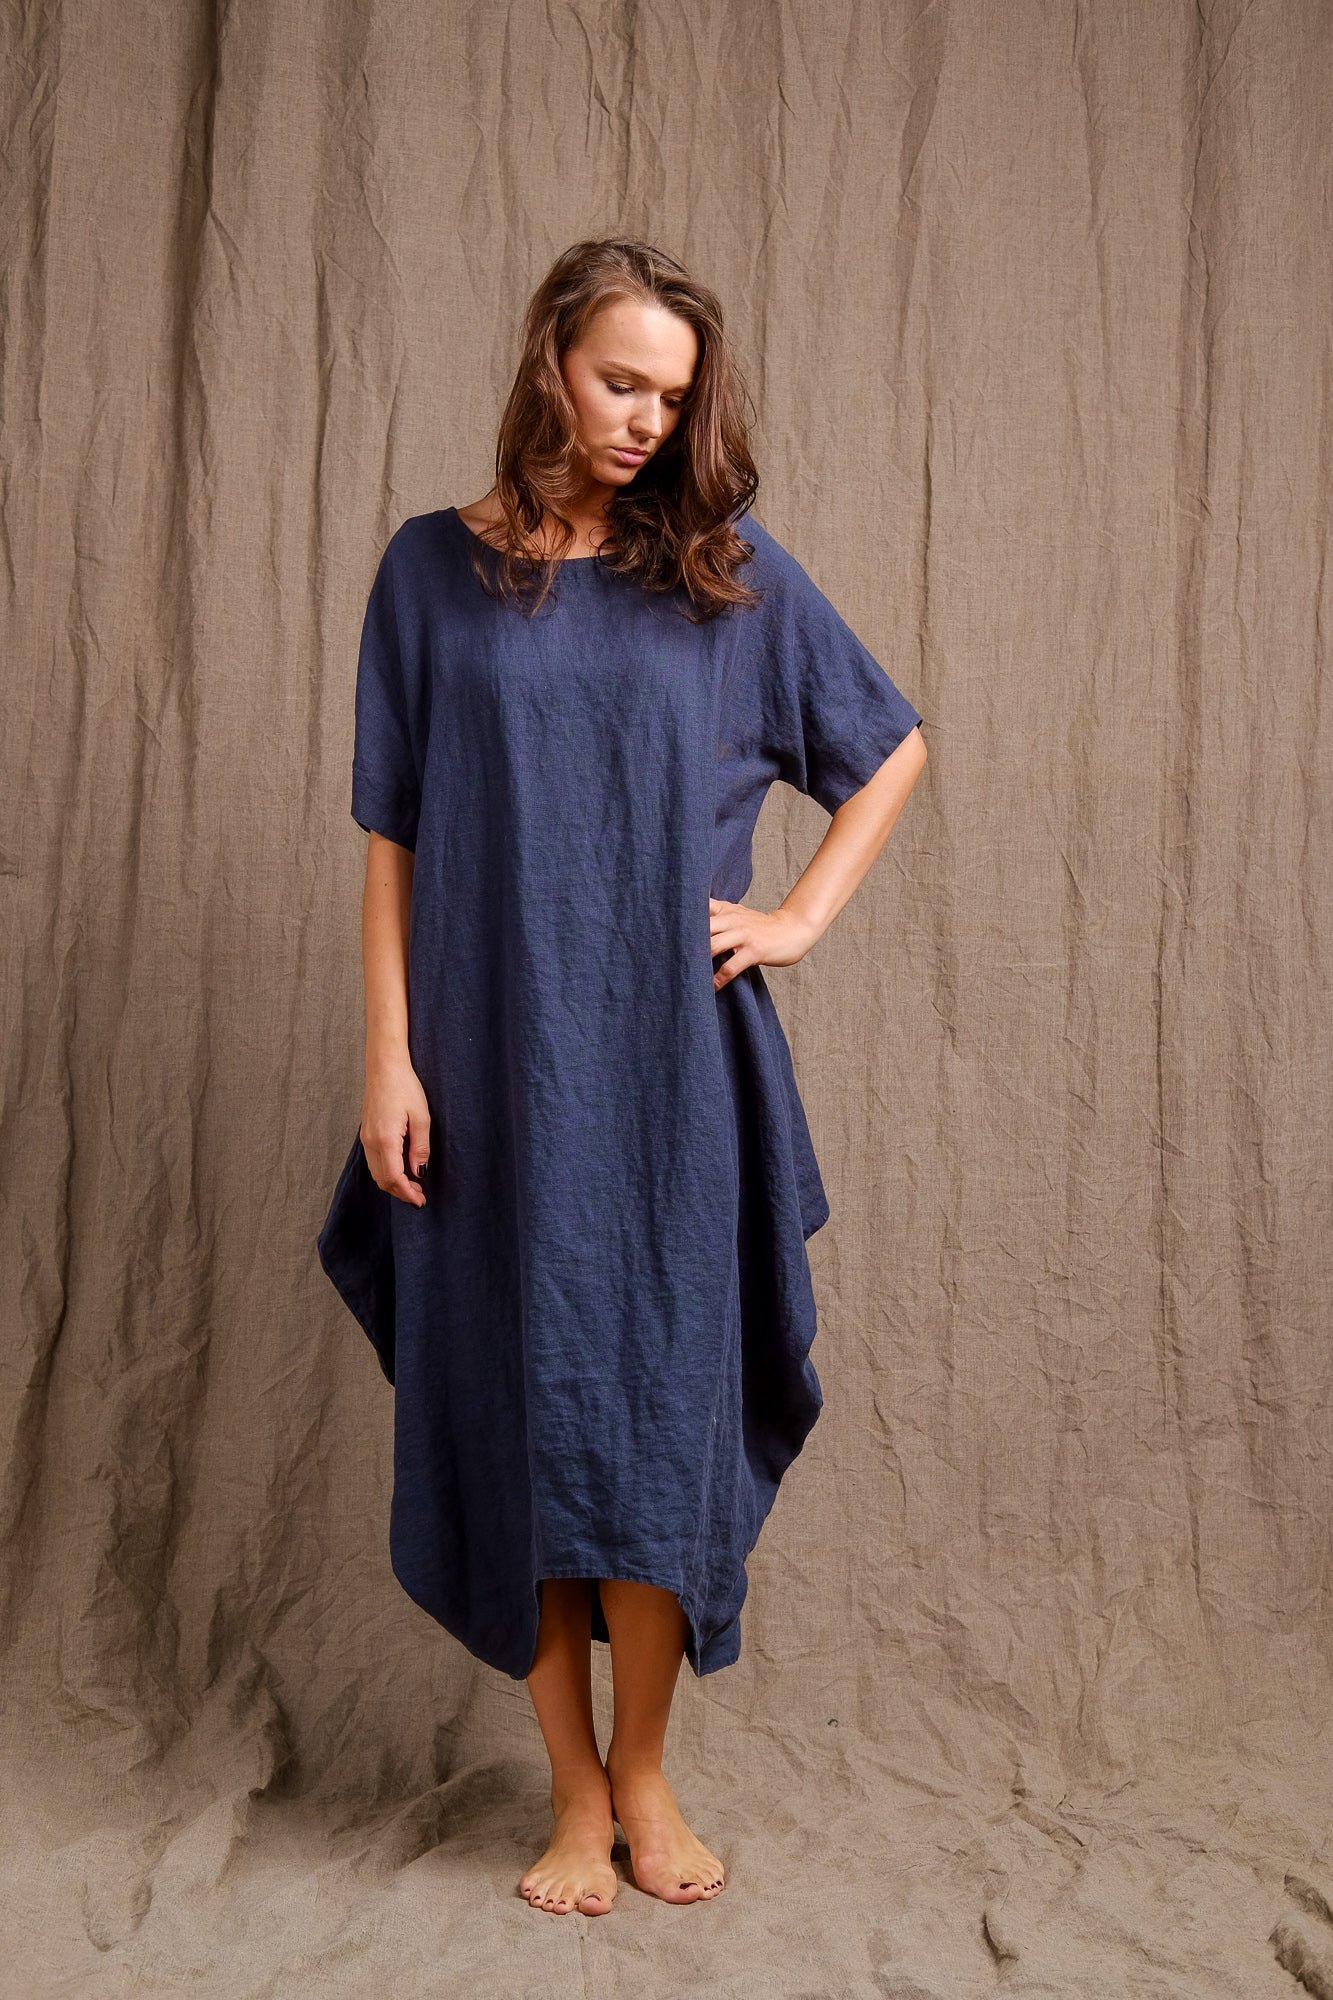 navy linen tank dress, organic dyed tank dress, linen clothing, short sleeve dyed linen dress